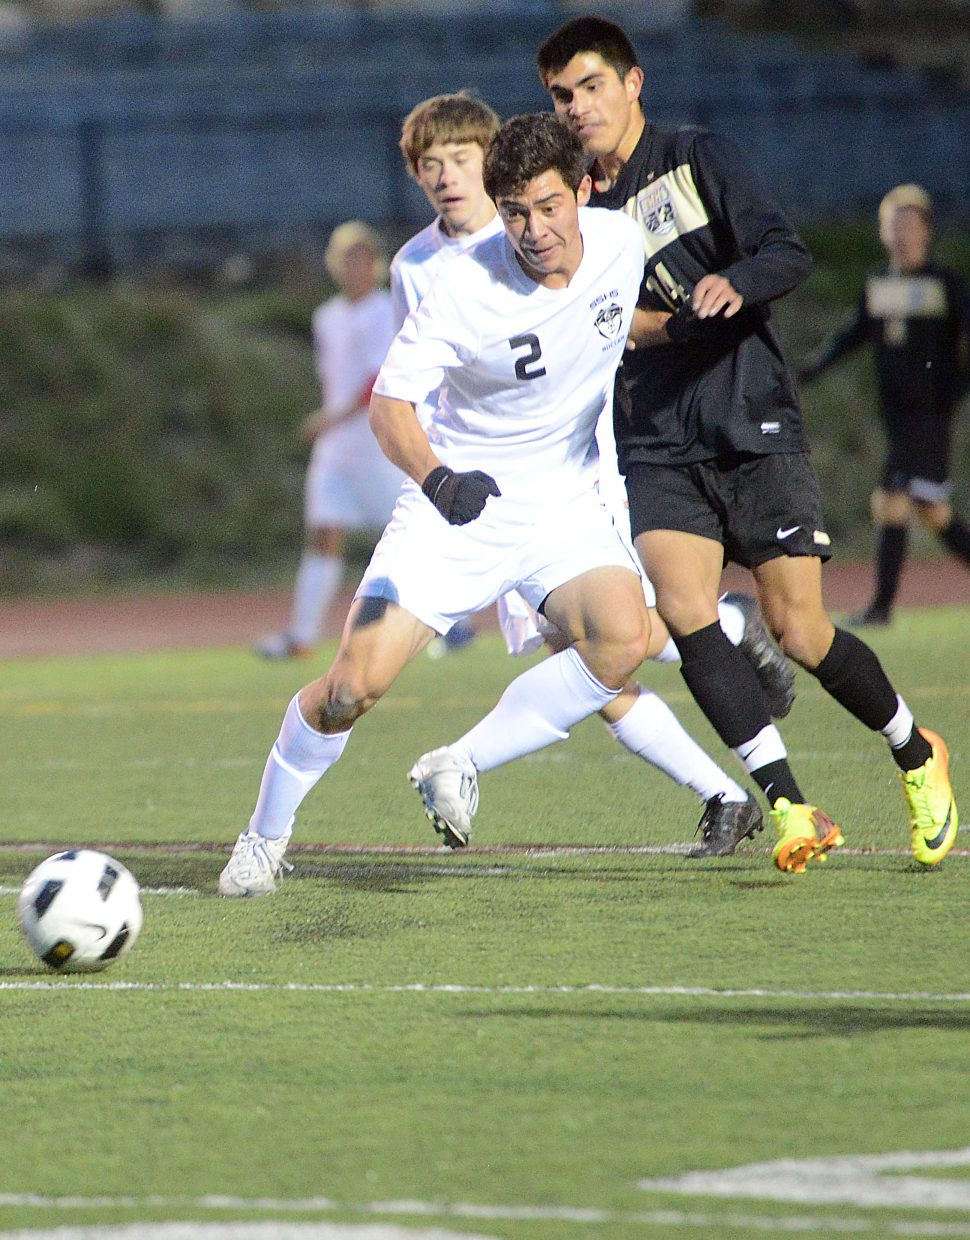 Steamboat's Michael Wong fights for a ball Thursday against Battle Mountain.